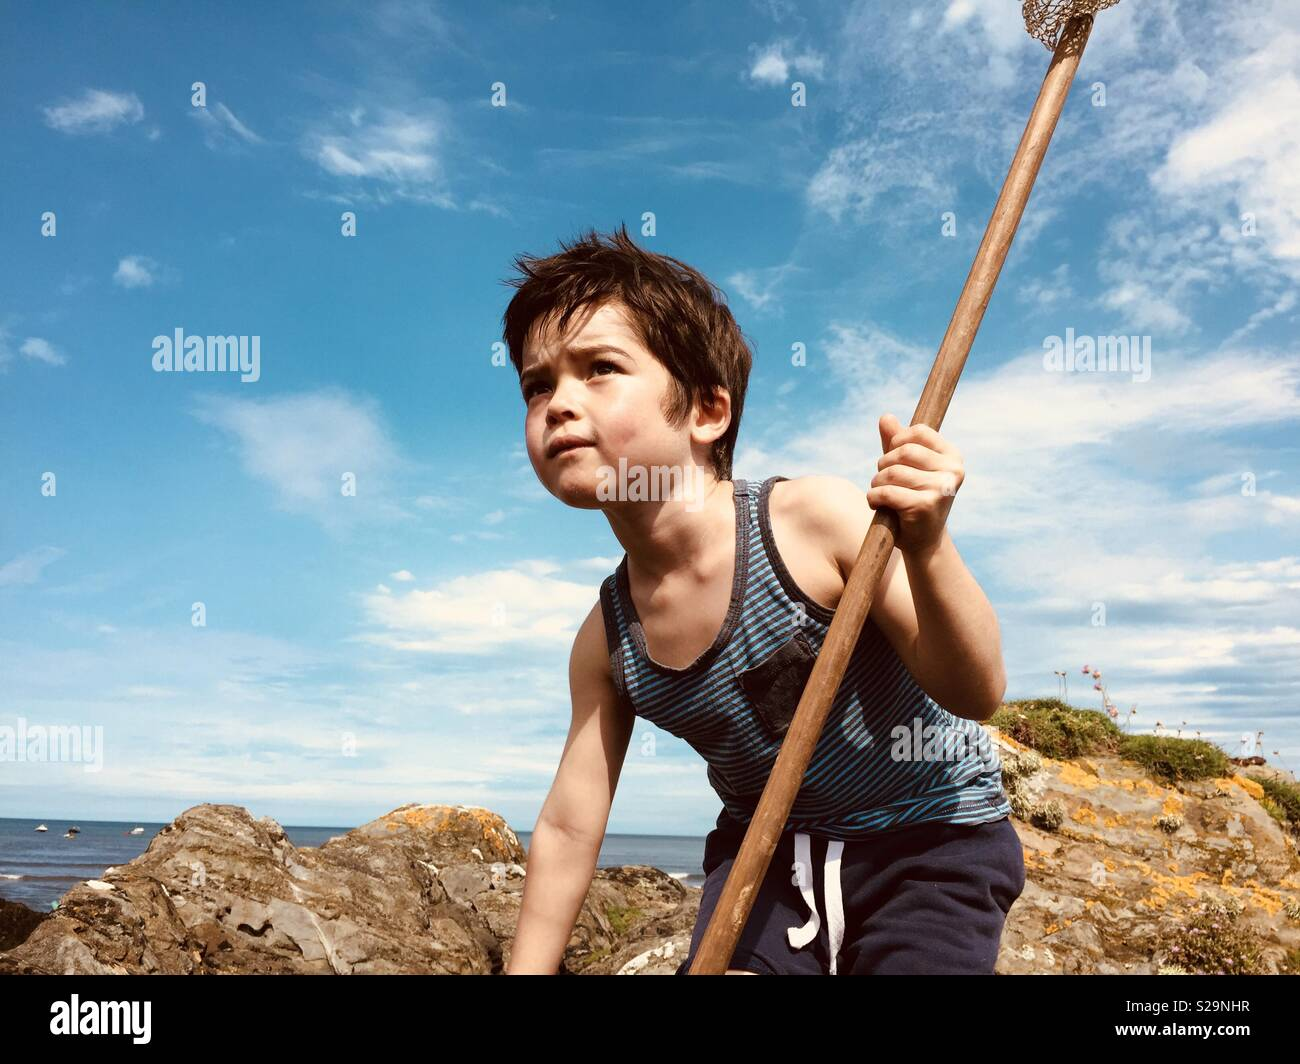 Boy in search of adventure by the sea - Stock Image